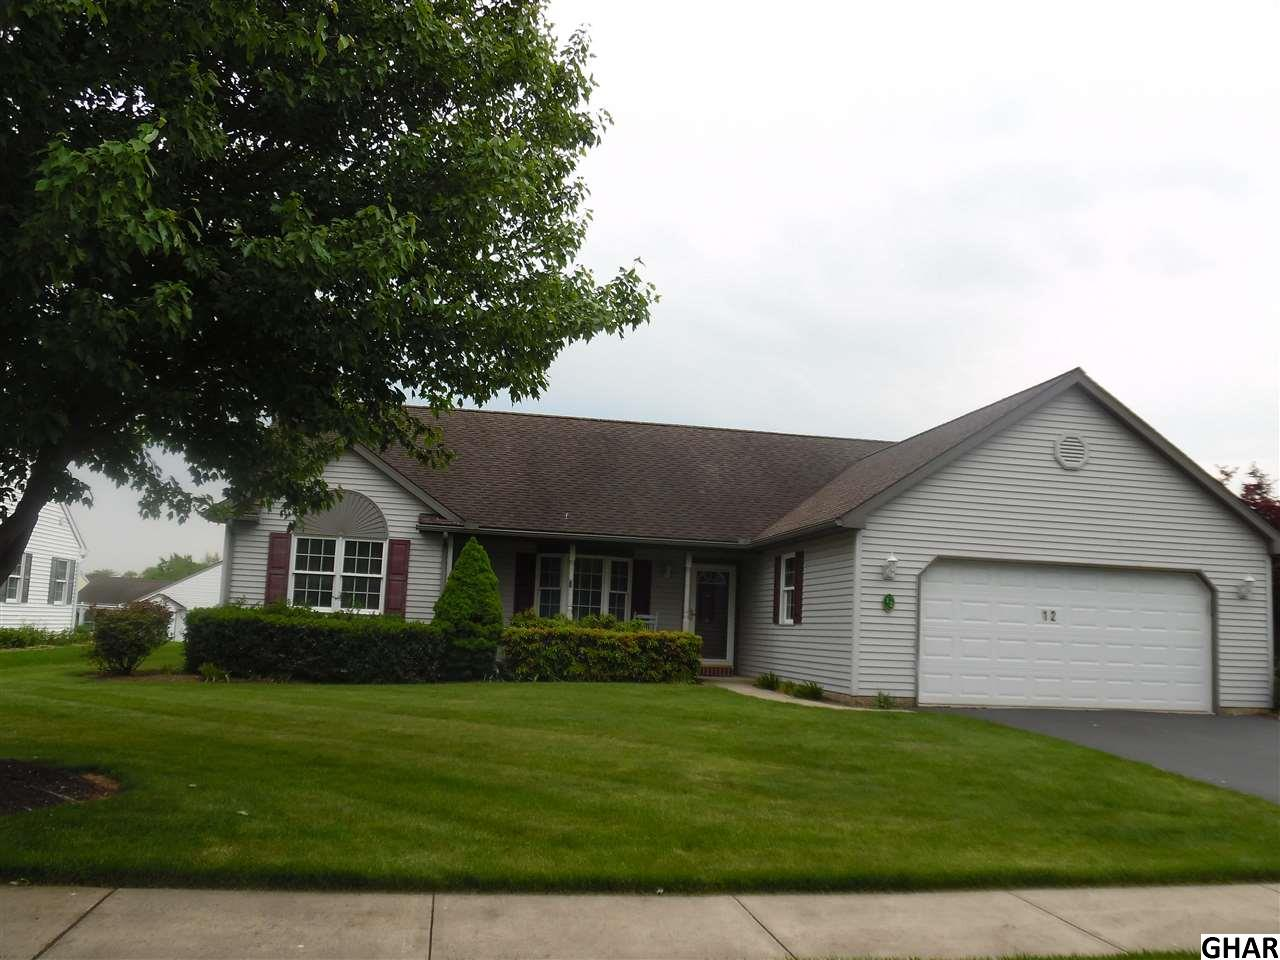 12 Rosemont Dr, Myerstown, PA 17067